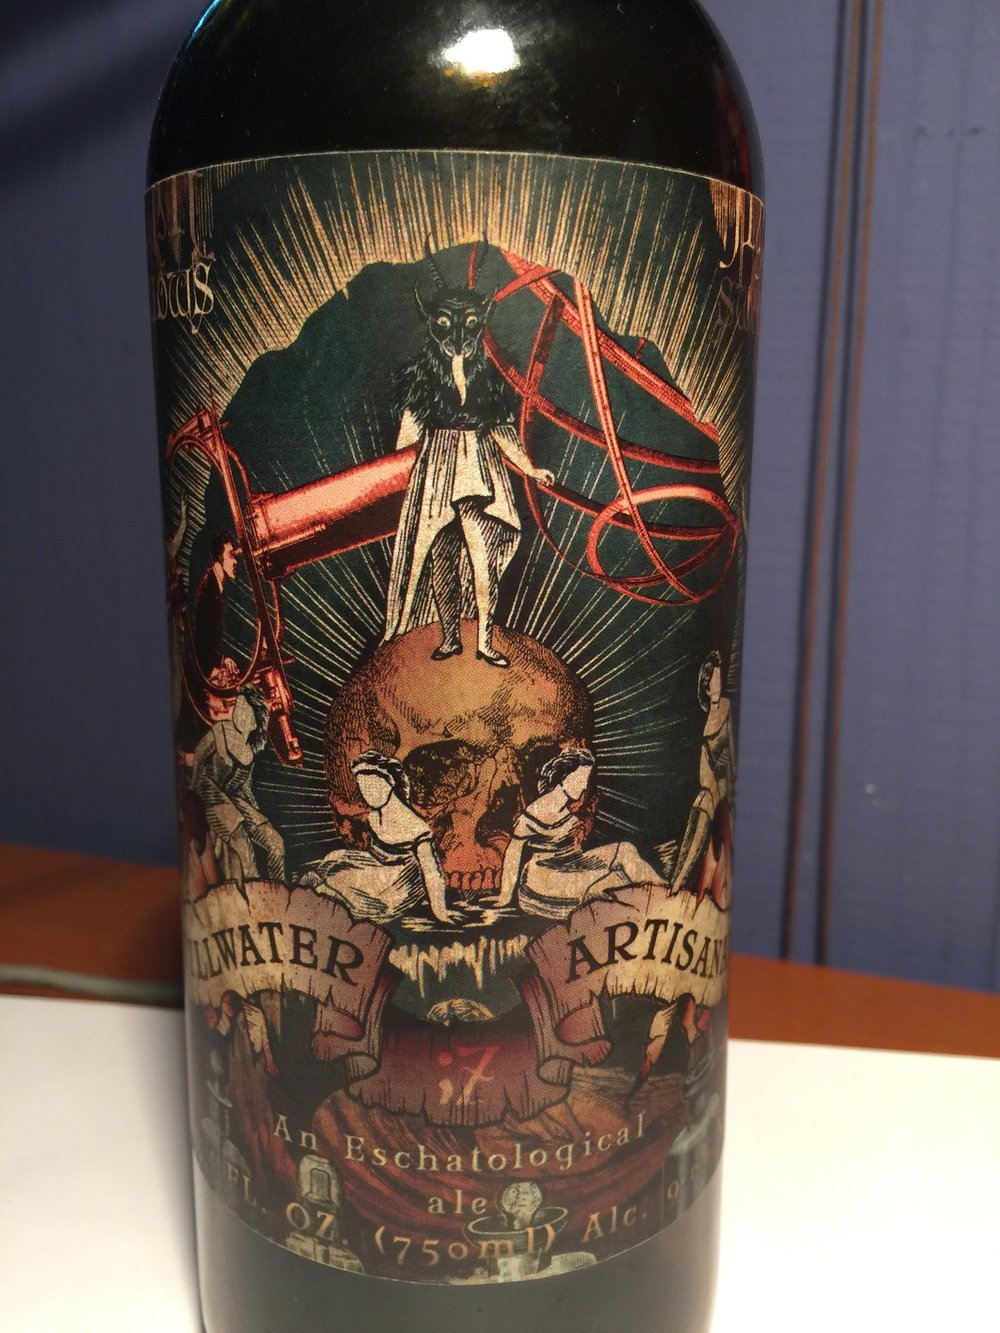 Picture of Stillwater Artisanal's An Eschatological Ale label. A very original beer label design.